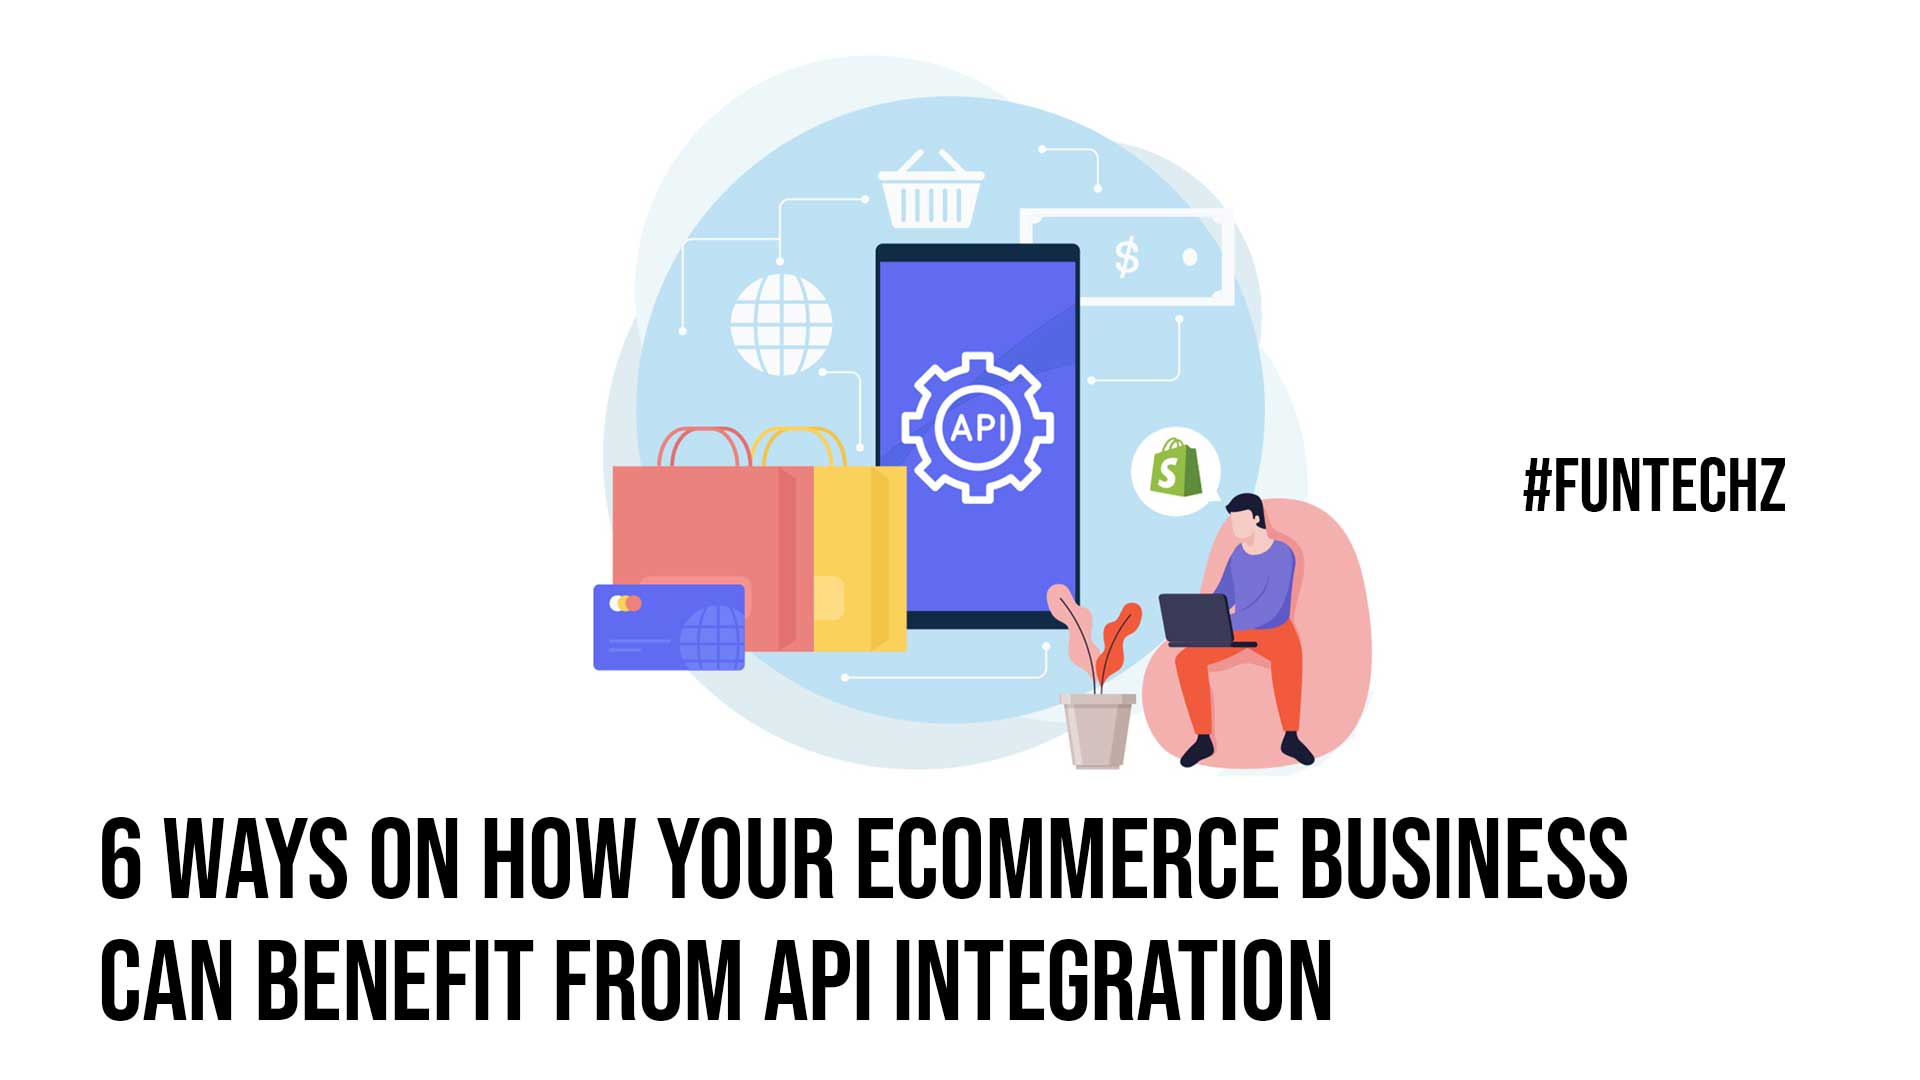 6 Ways on How Your Ecommerce Business Can Benefit from API Integration